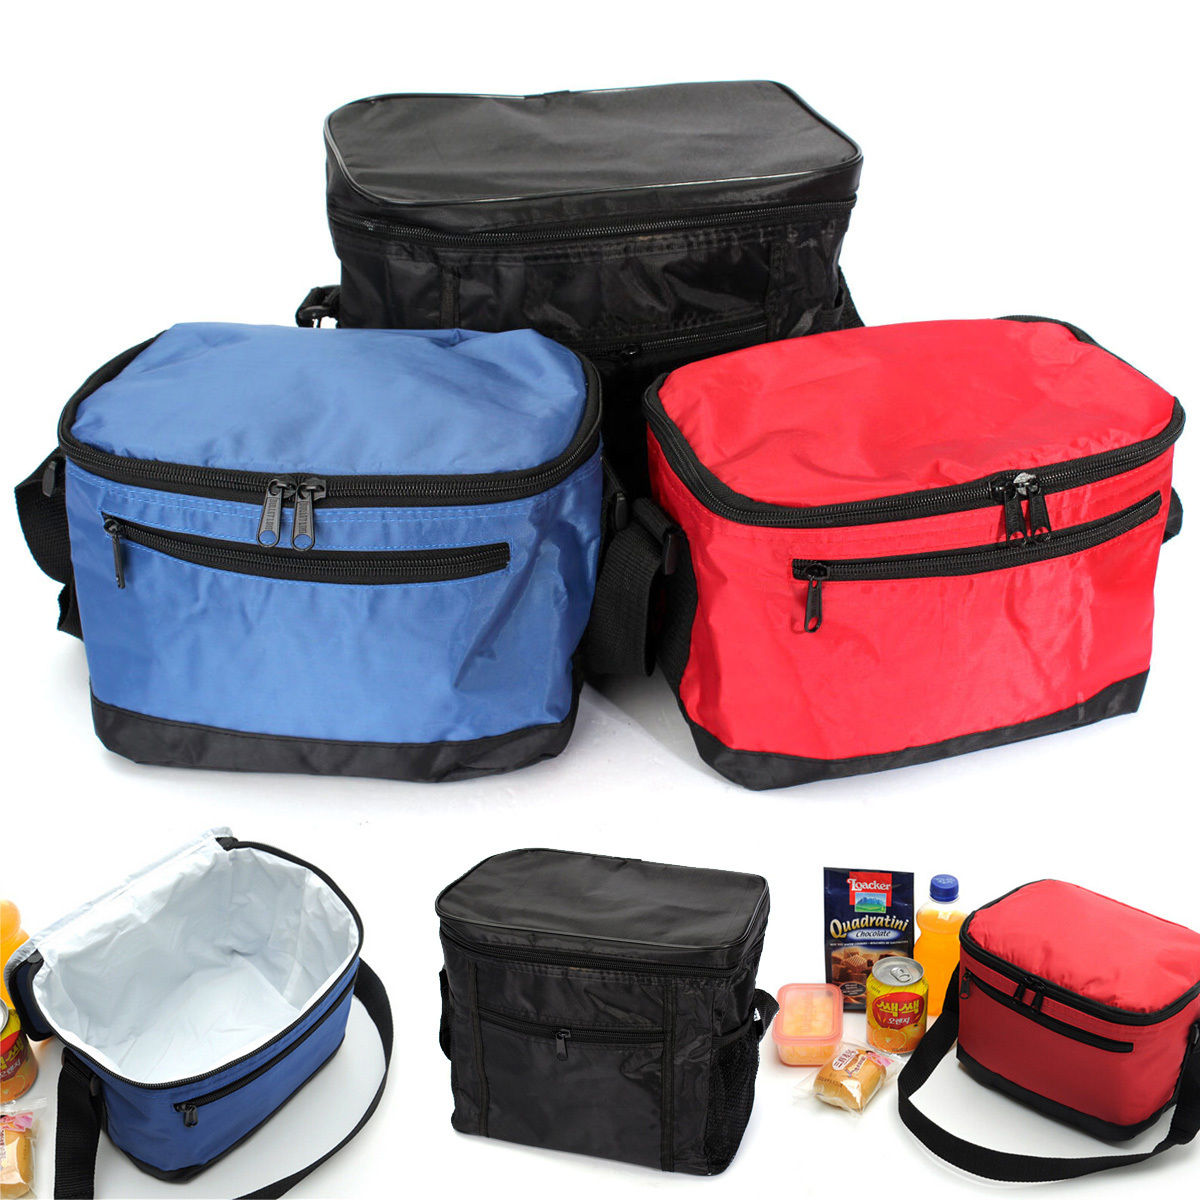 NEW Lunch Bag Waterproof Thermal Portable Outdoor Cooler Insulated Picnic Camping Hiking Lunch Box